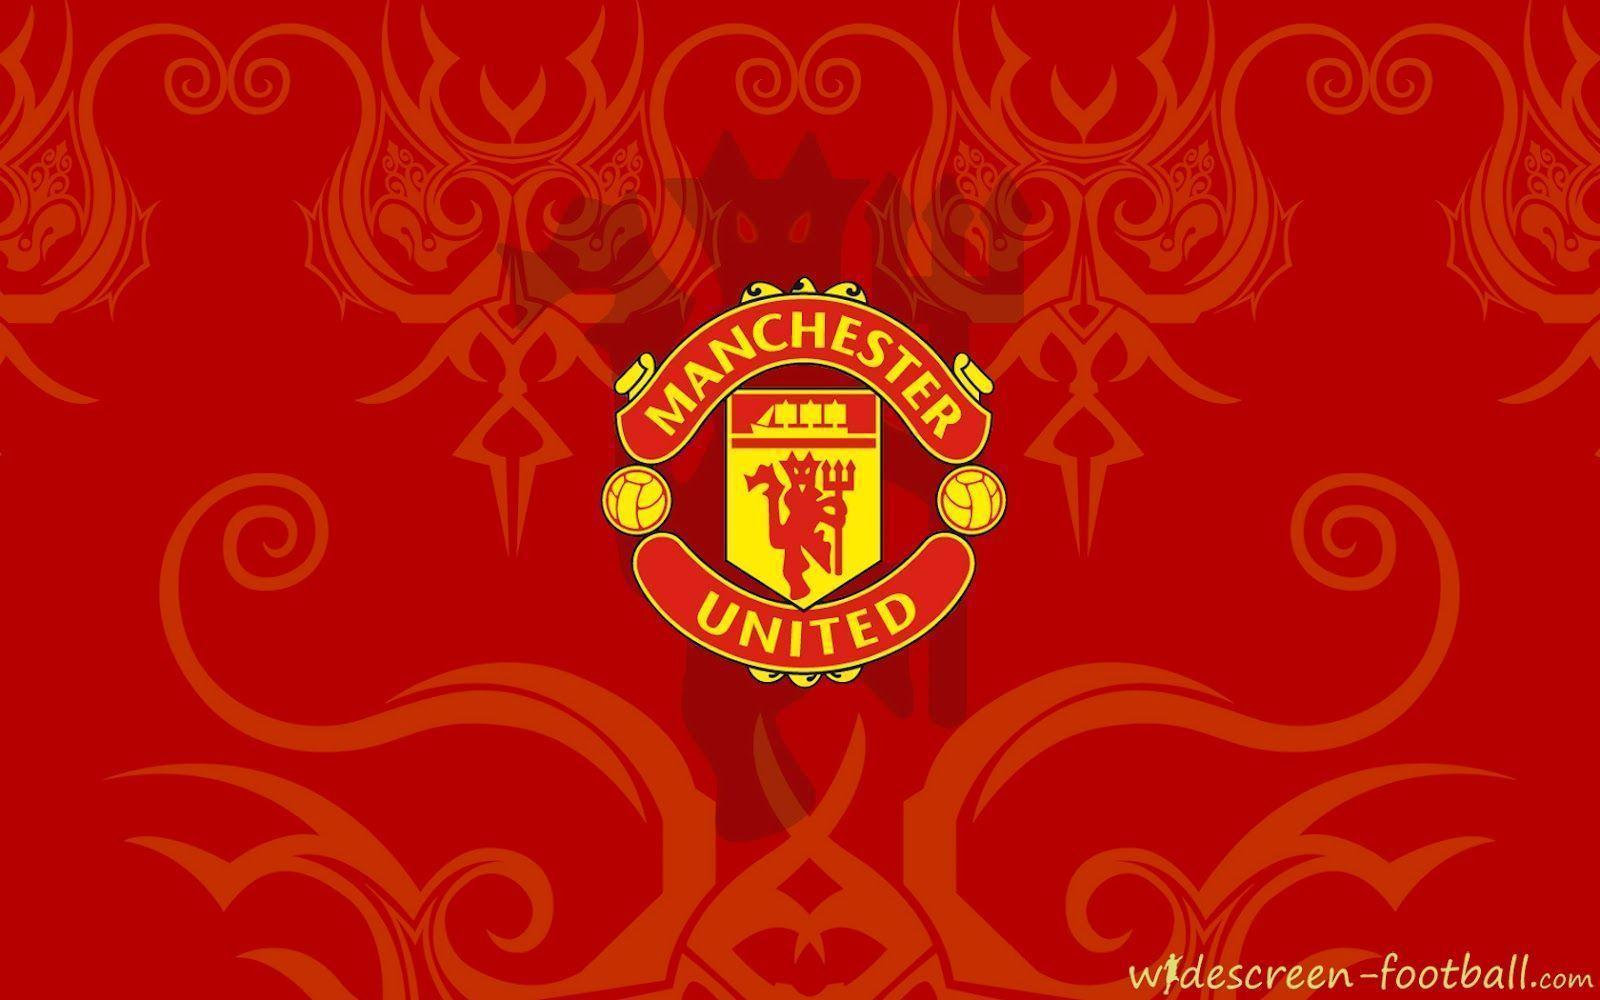 manchester united logo wallpapers wallpaper cave manchester united logo wallpapers